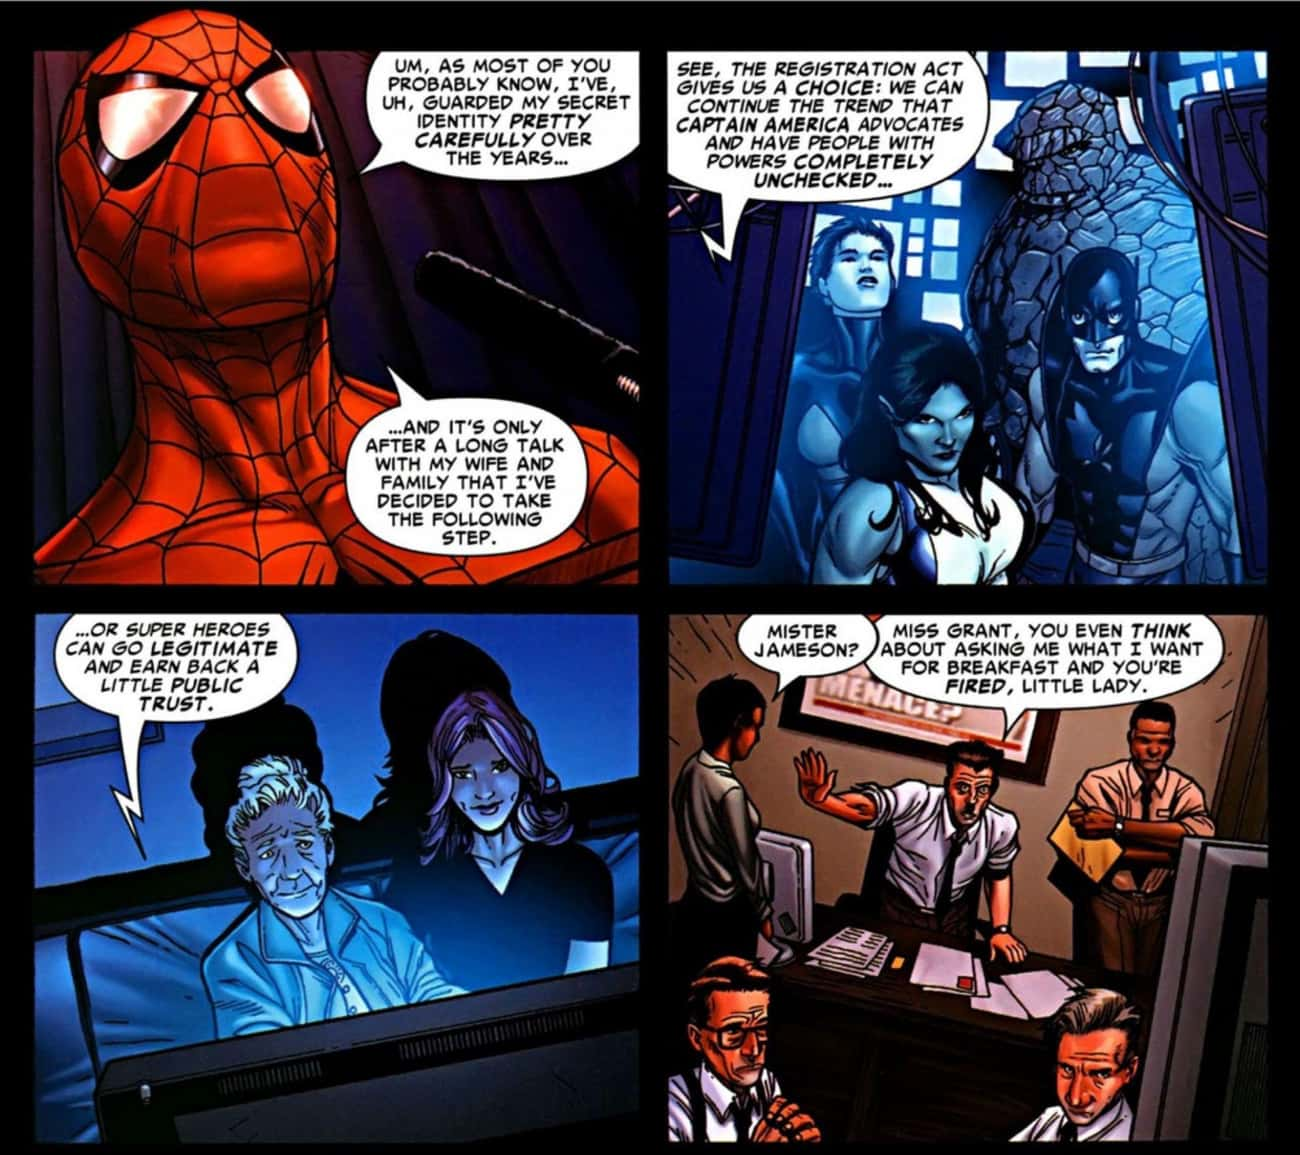 J. Jonah Jameson Collapses In  is listed (or ranked) 4 on the list What Happened After Spider-Man's Secret Identity Was Revealed In The 'Civil War' Comic